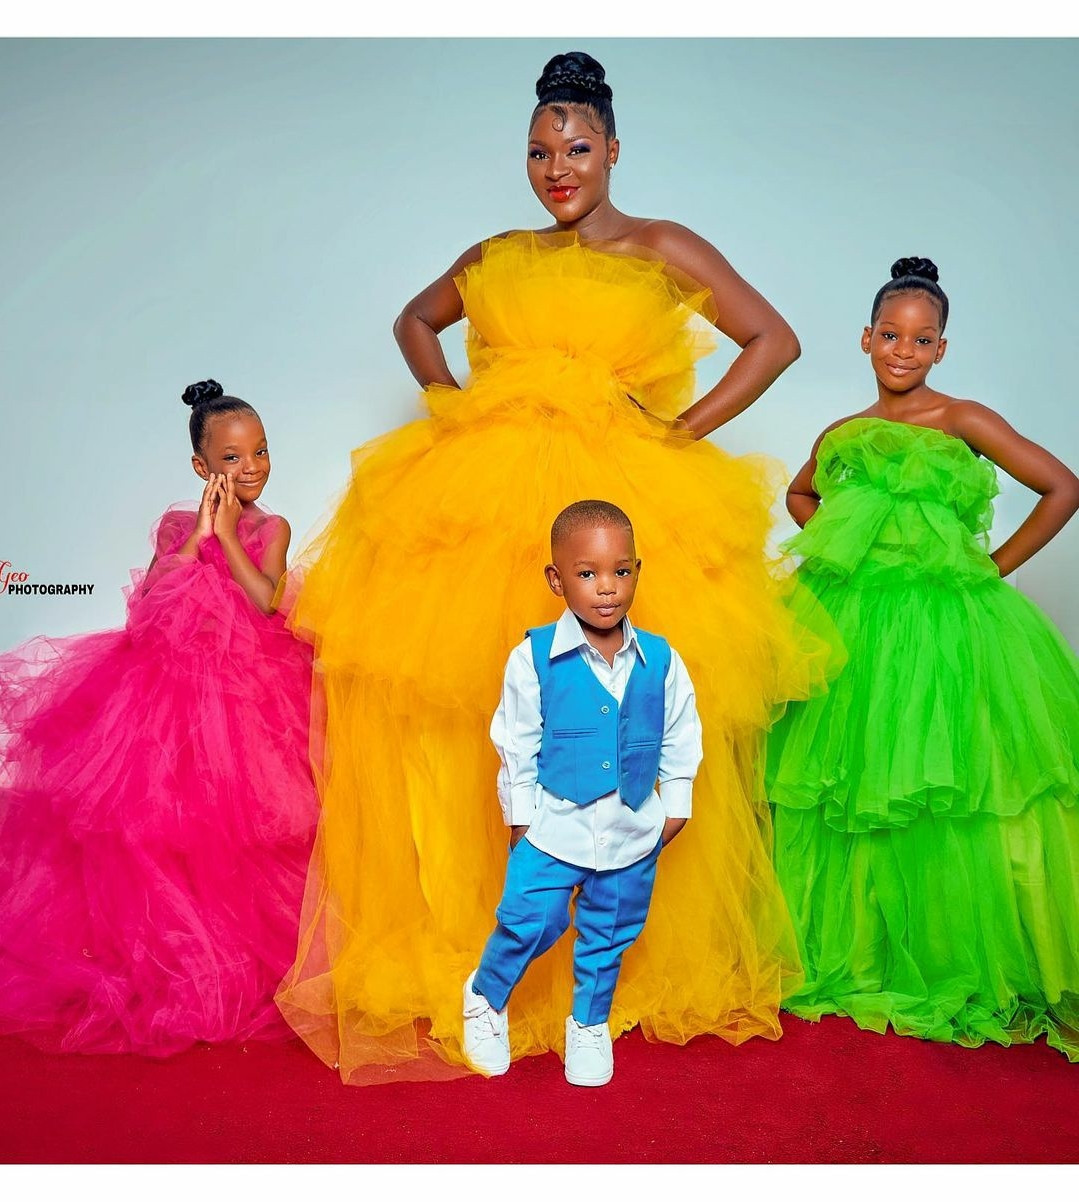 60a8fca010739 - Actress Chacha Eke Faani poses with her children in beautiful new photos